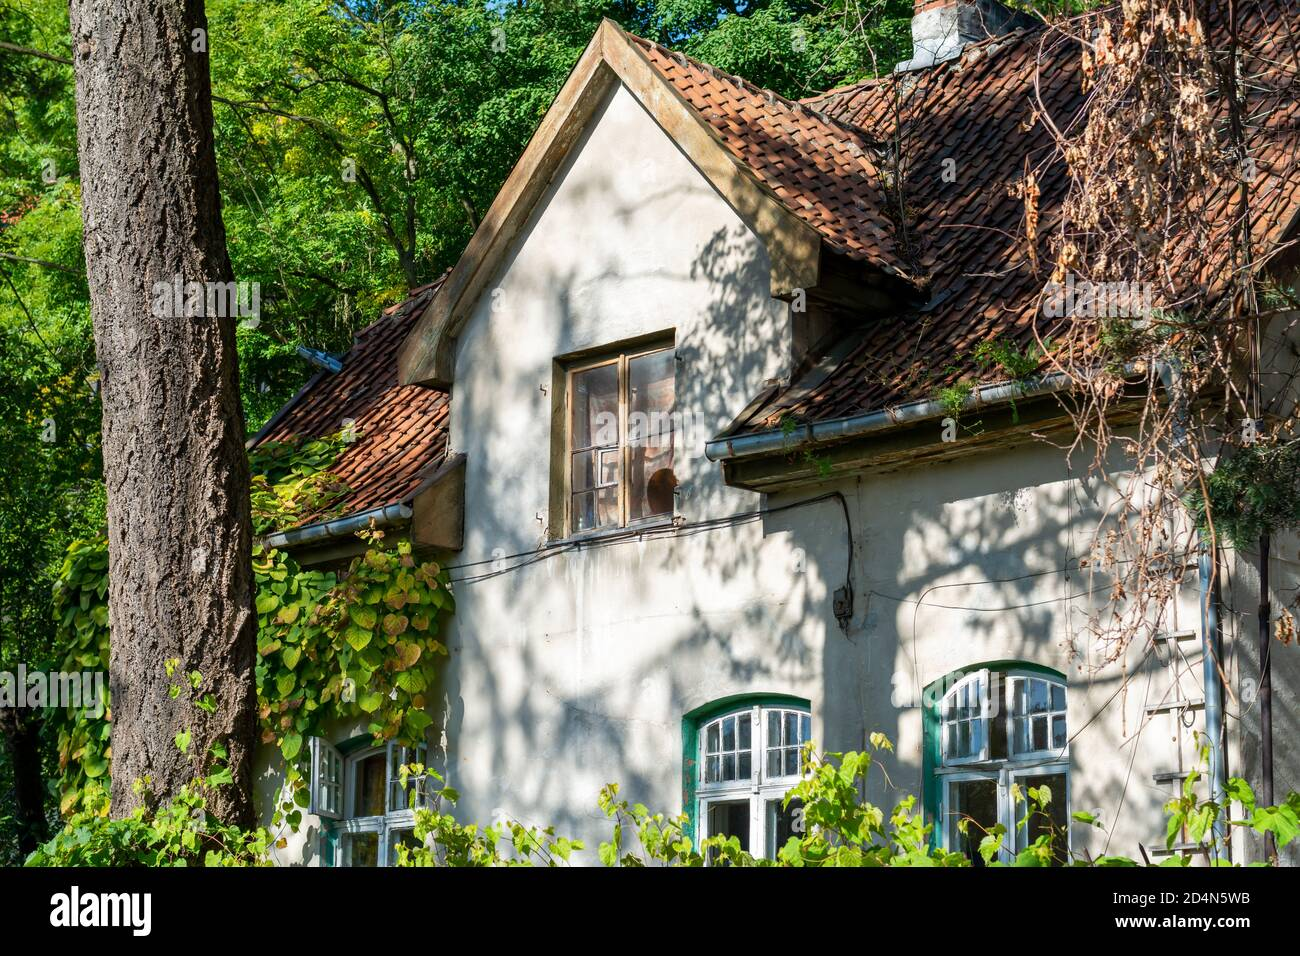 19th century house with tiled roof window. Front facade details, Beautiful old cottage in the forest. Stock Photo